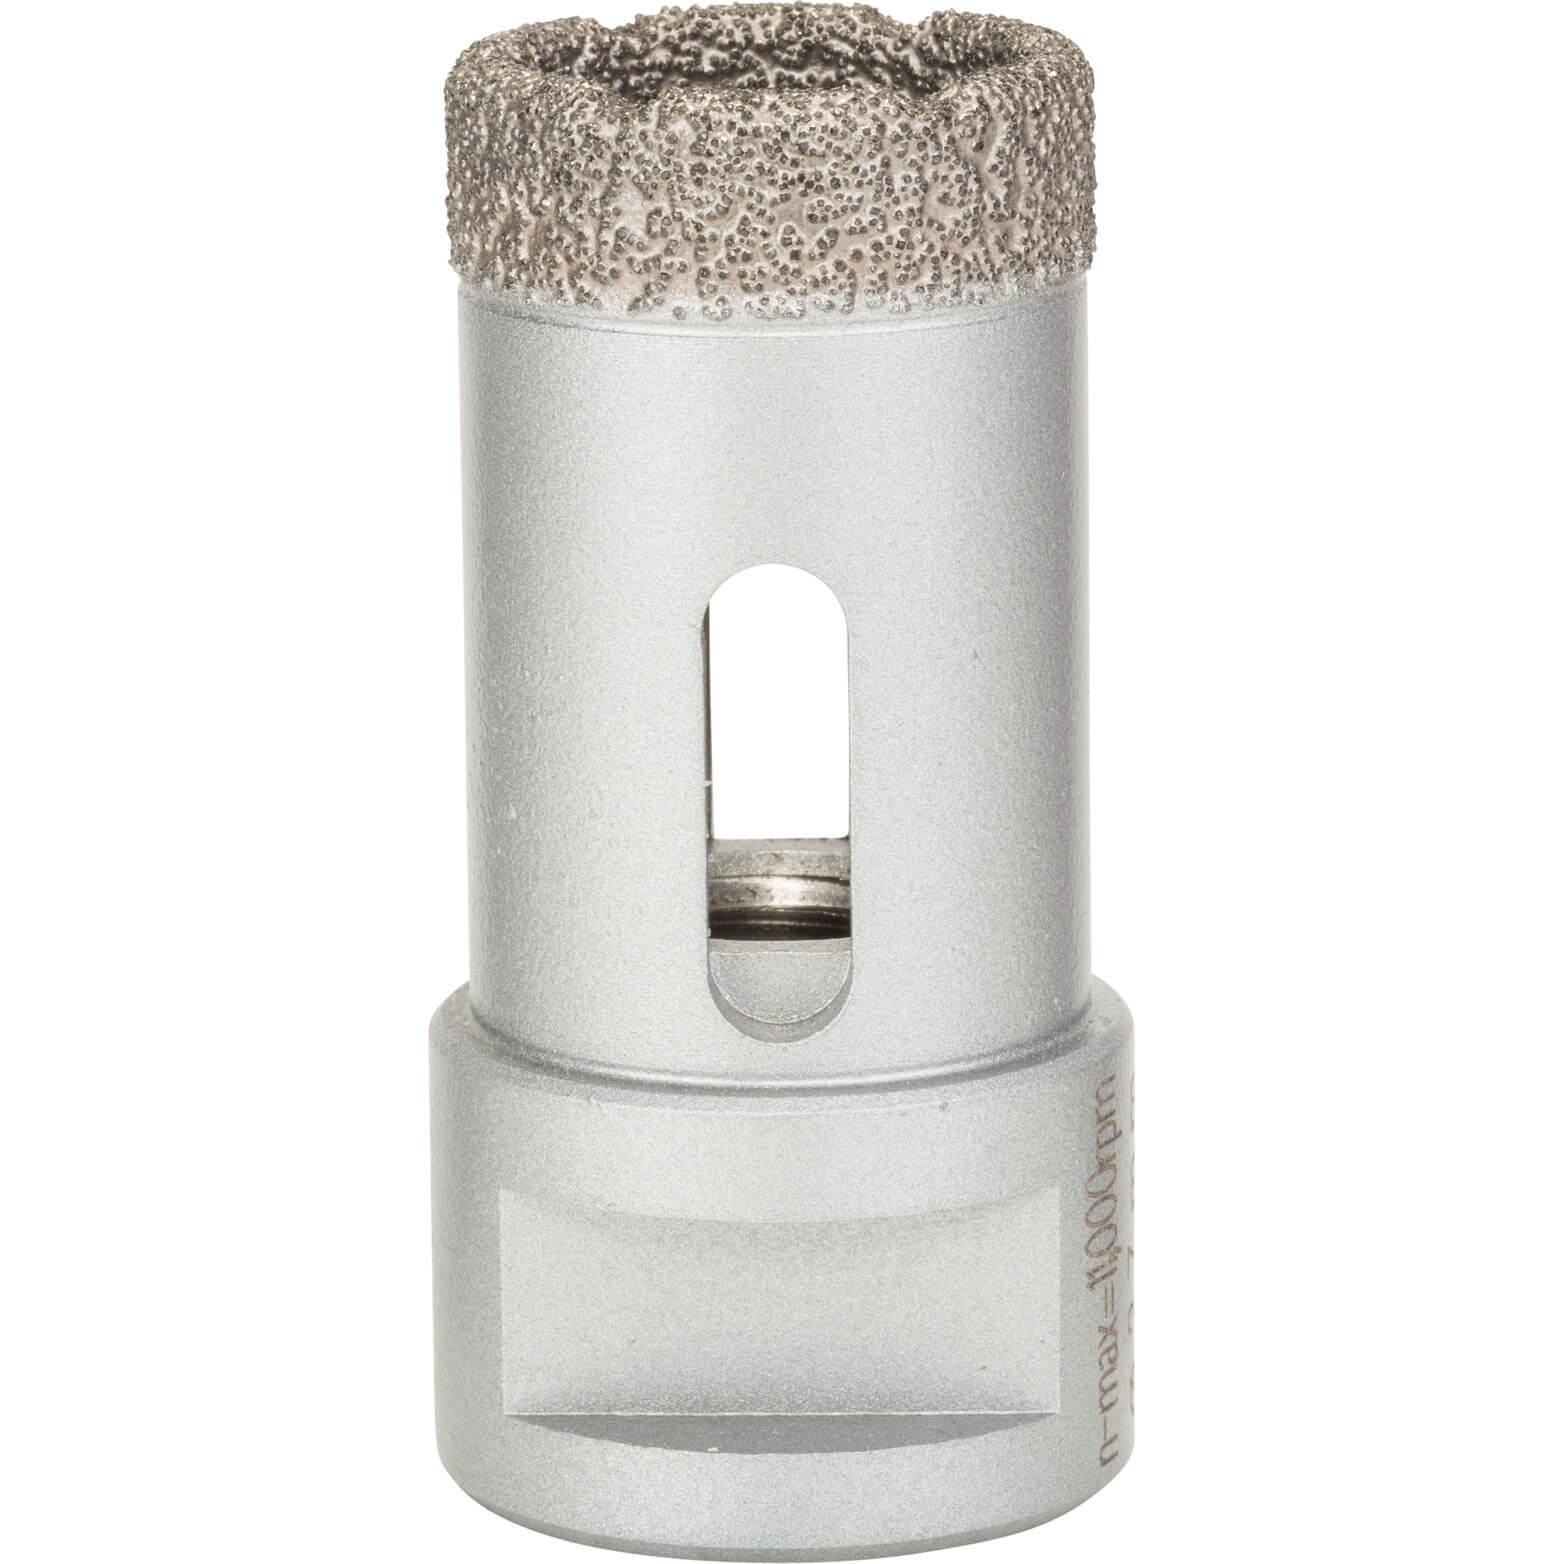 Bosch Angle Grinder Dry Diamond Hole Cutter For Ceramics 27mm